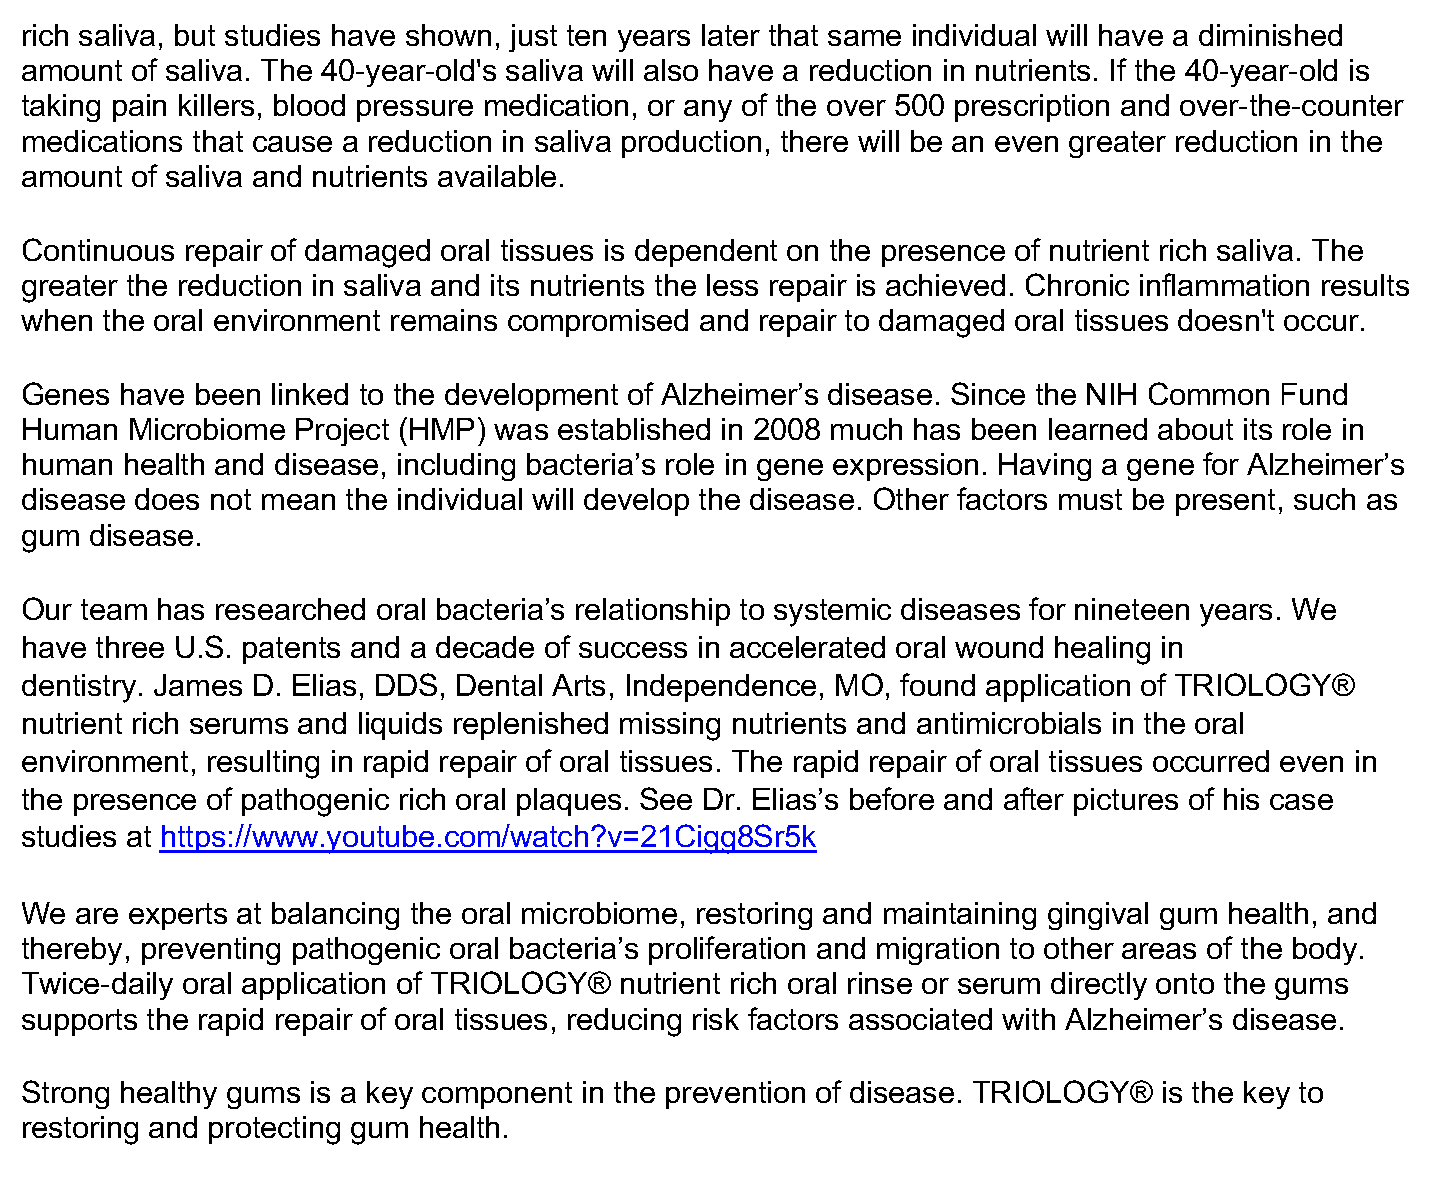 prevention-of-gum-disease-is-a-key-to-prevention-of-alzheimer-s-disease-page-2-3.png